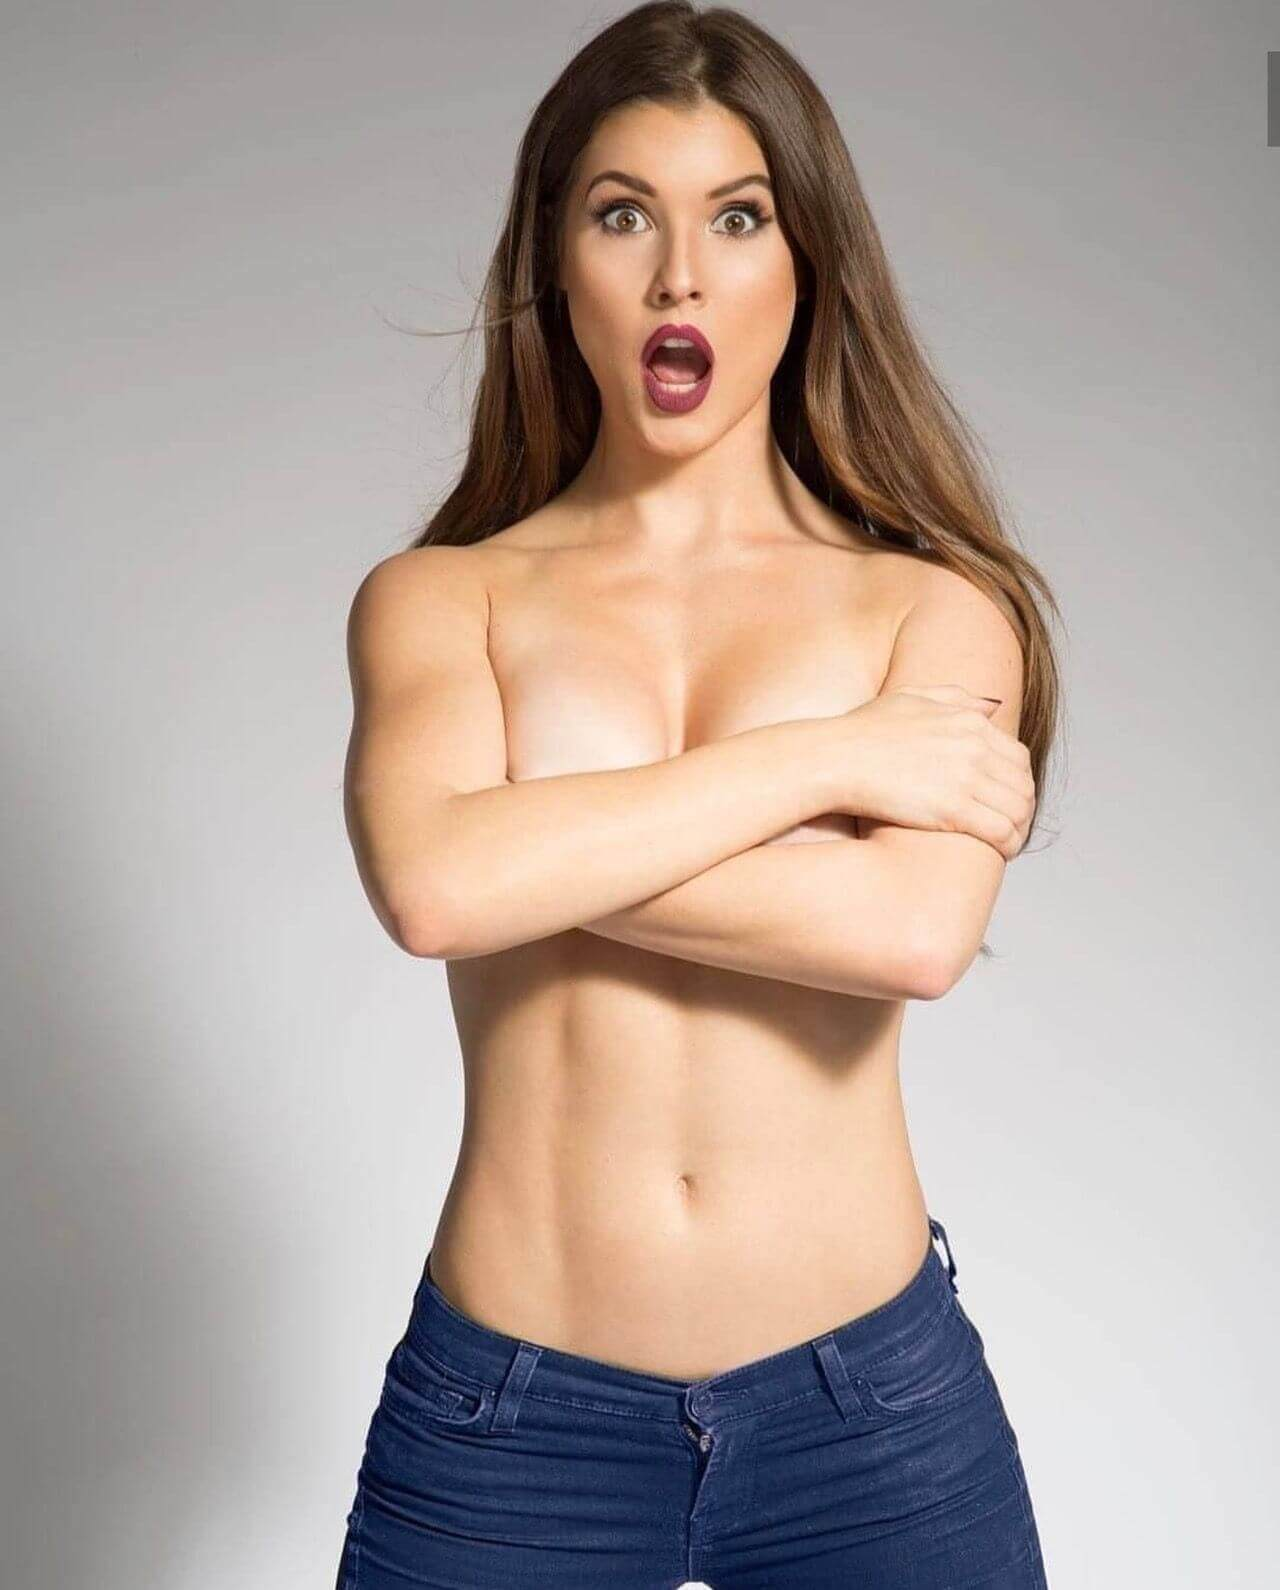 amanda cerny sexy topless pic (2)